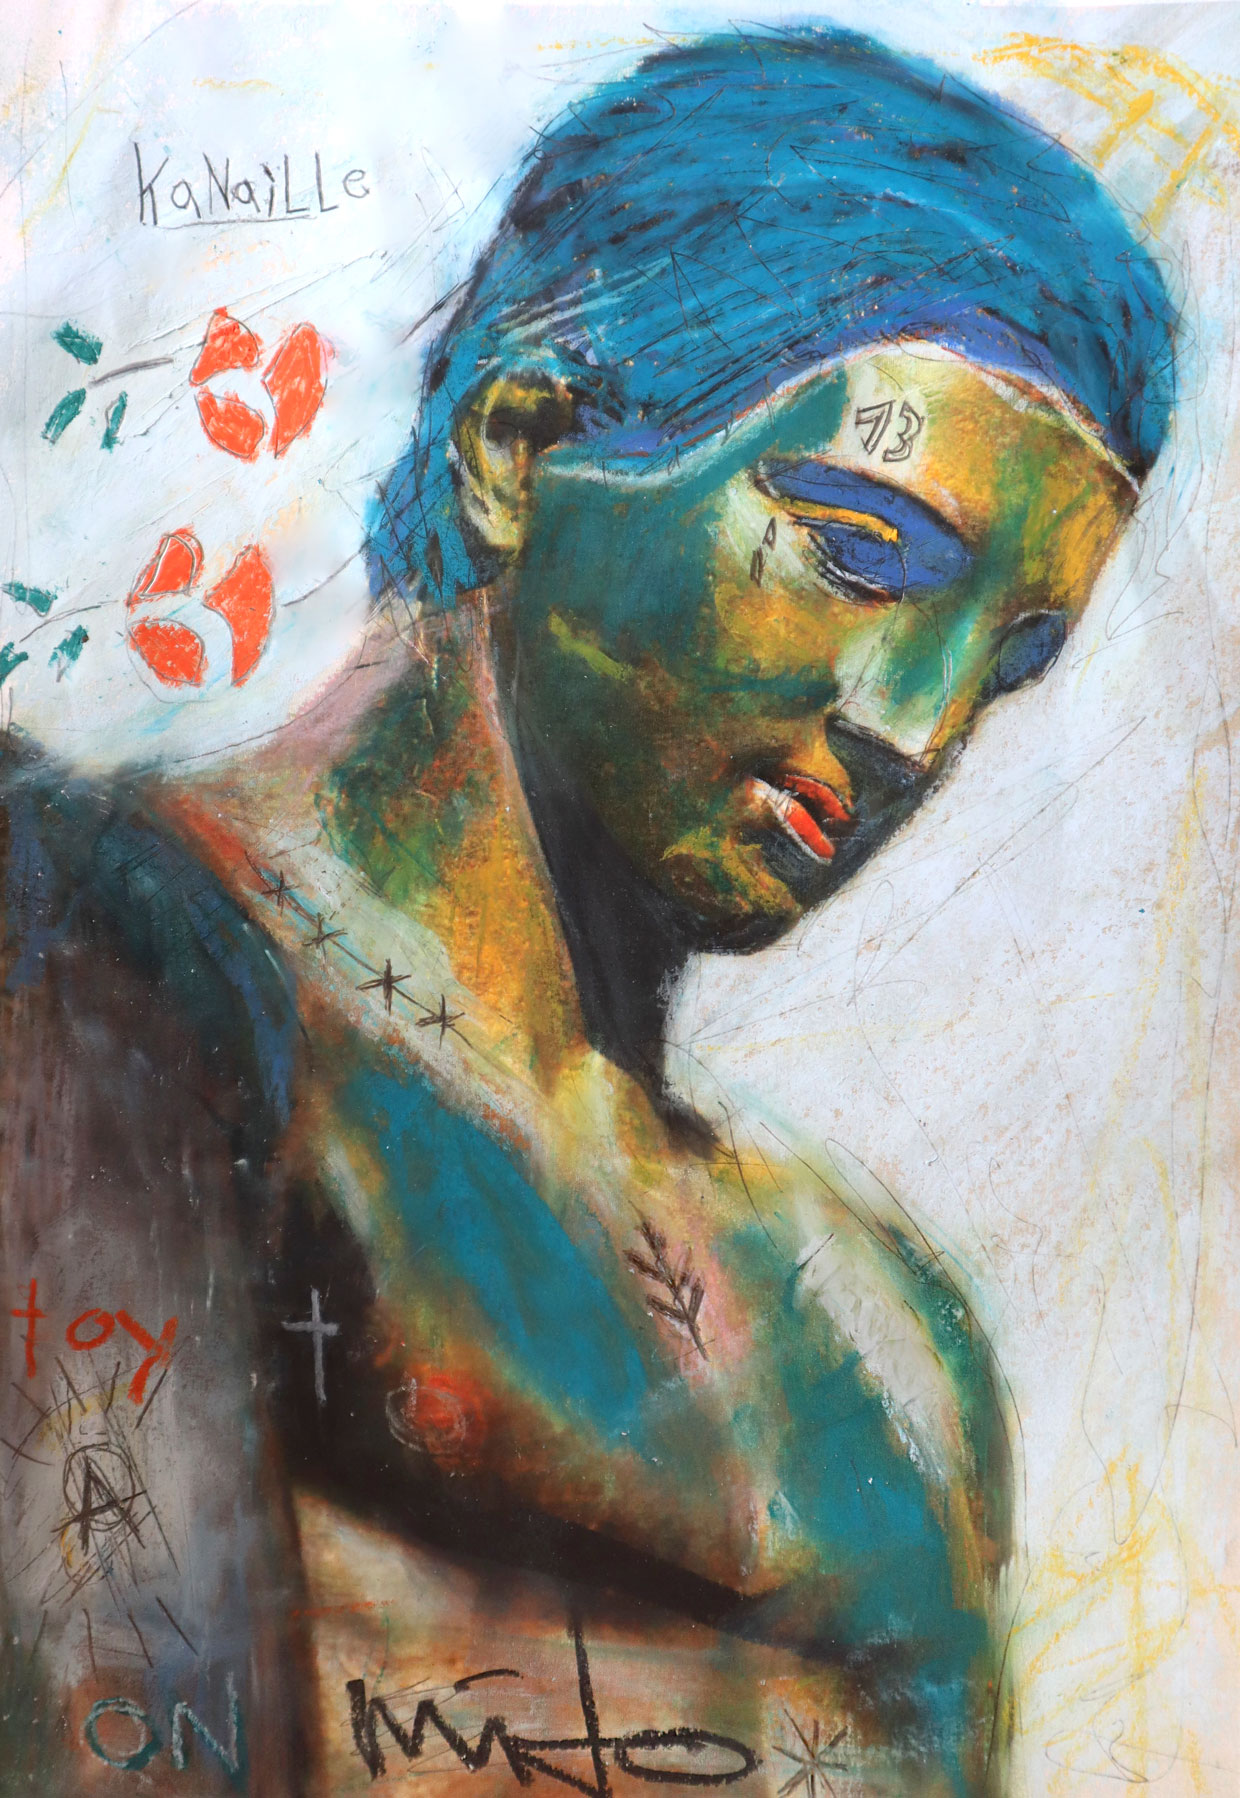 Classical portrait with the title 'Filho do sol' (Son of the sun). Painted with Chalk on paper.